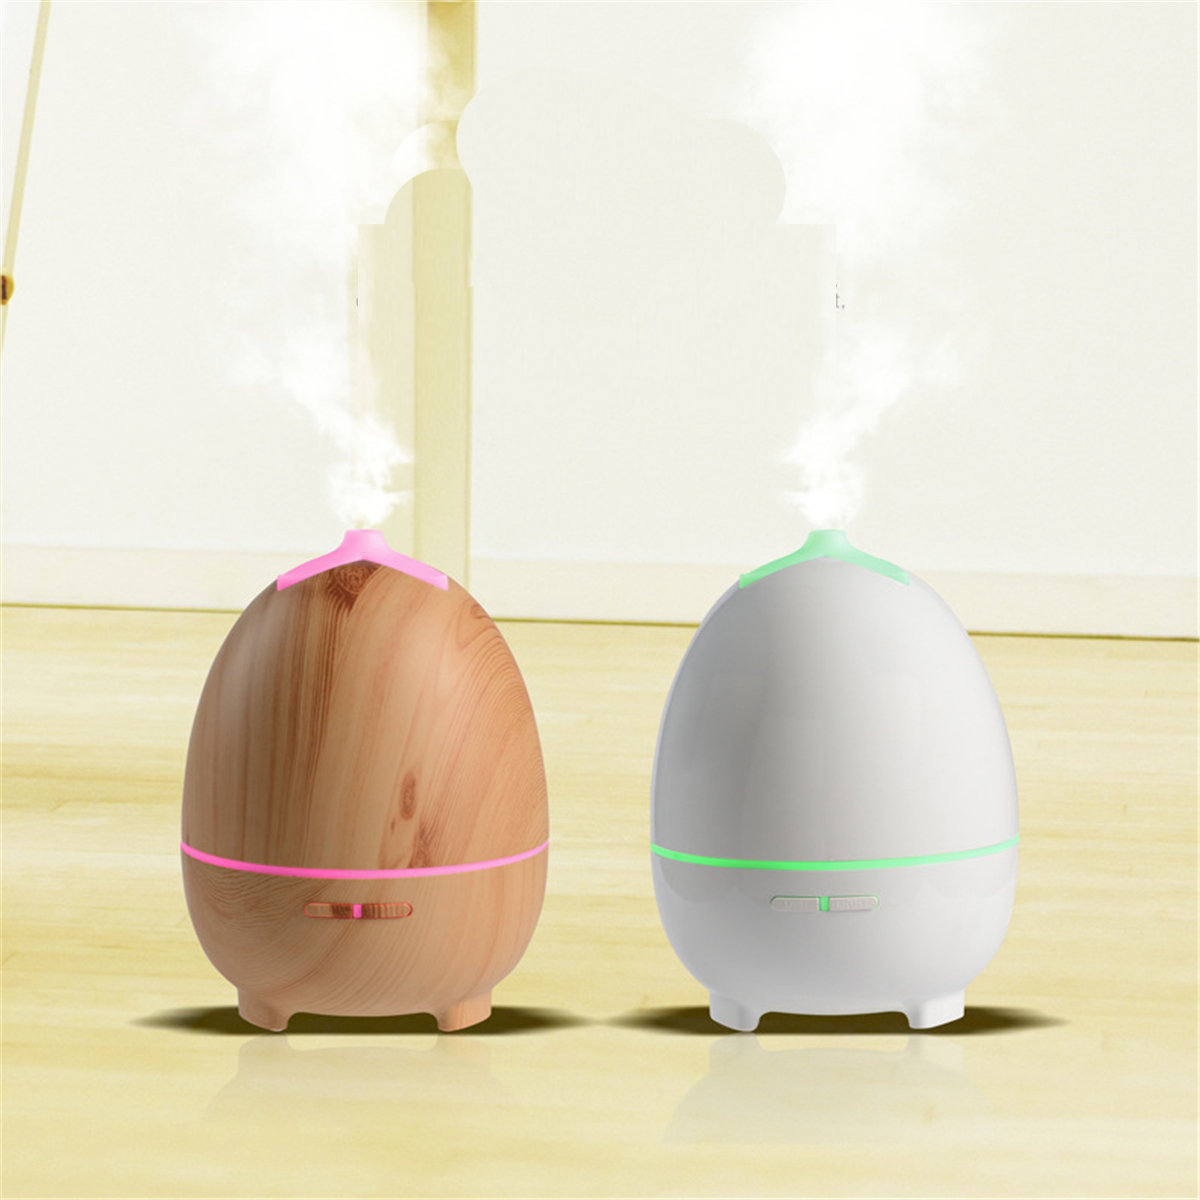 Aroma Essential Oil Diffuser Ultrasonic Air Humidifier 7 Color Chang LED Lights For Office Room